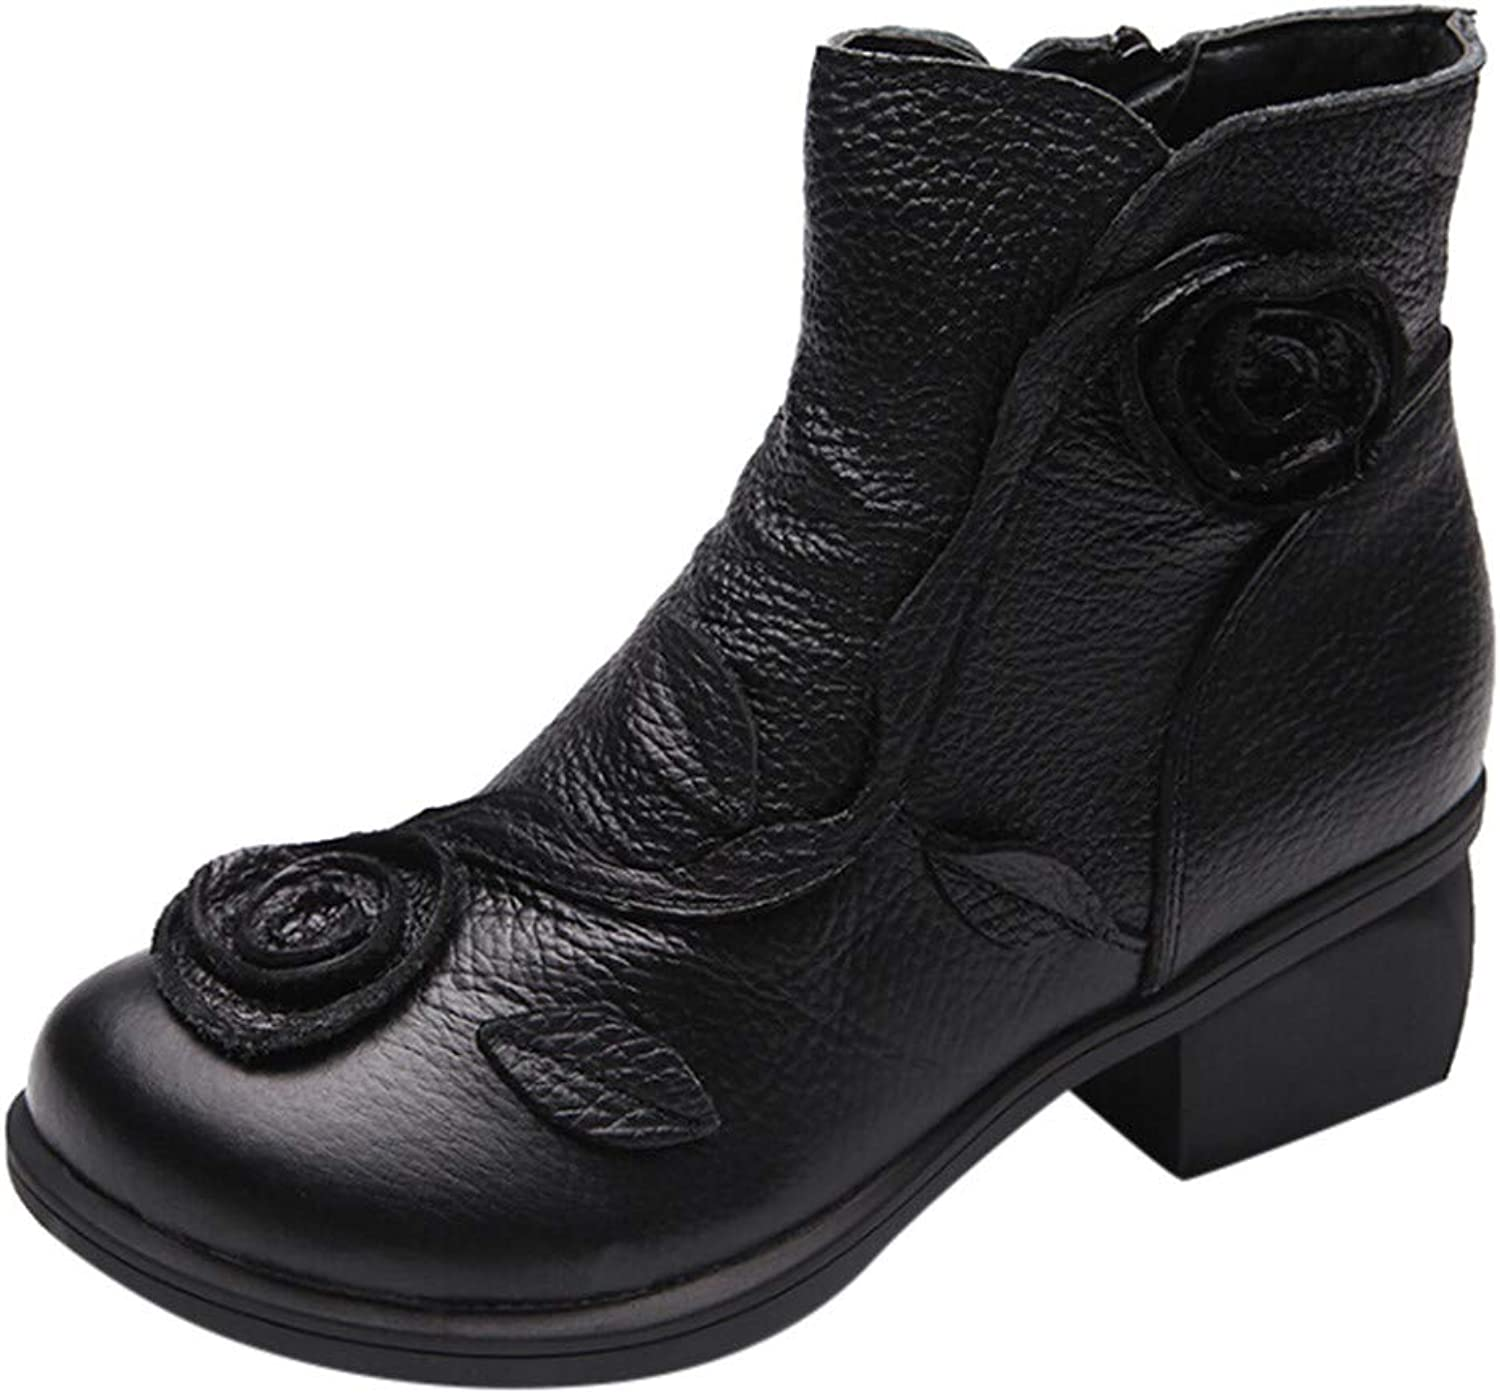 XoiuSyi Women Ethnic Style Martin Boots Lady Casual Hand-Stitched Flowers Leather Retro Boots